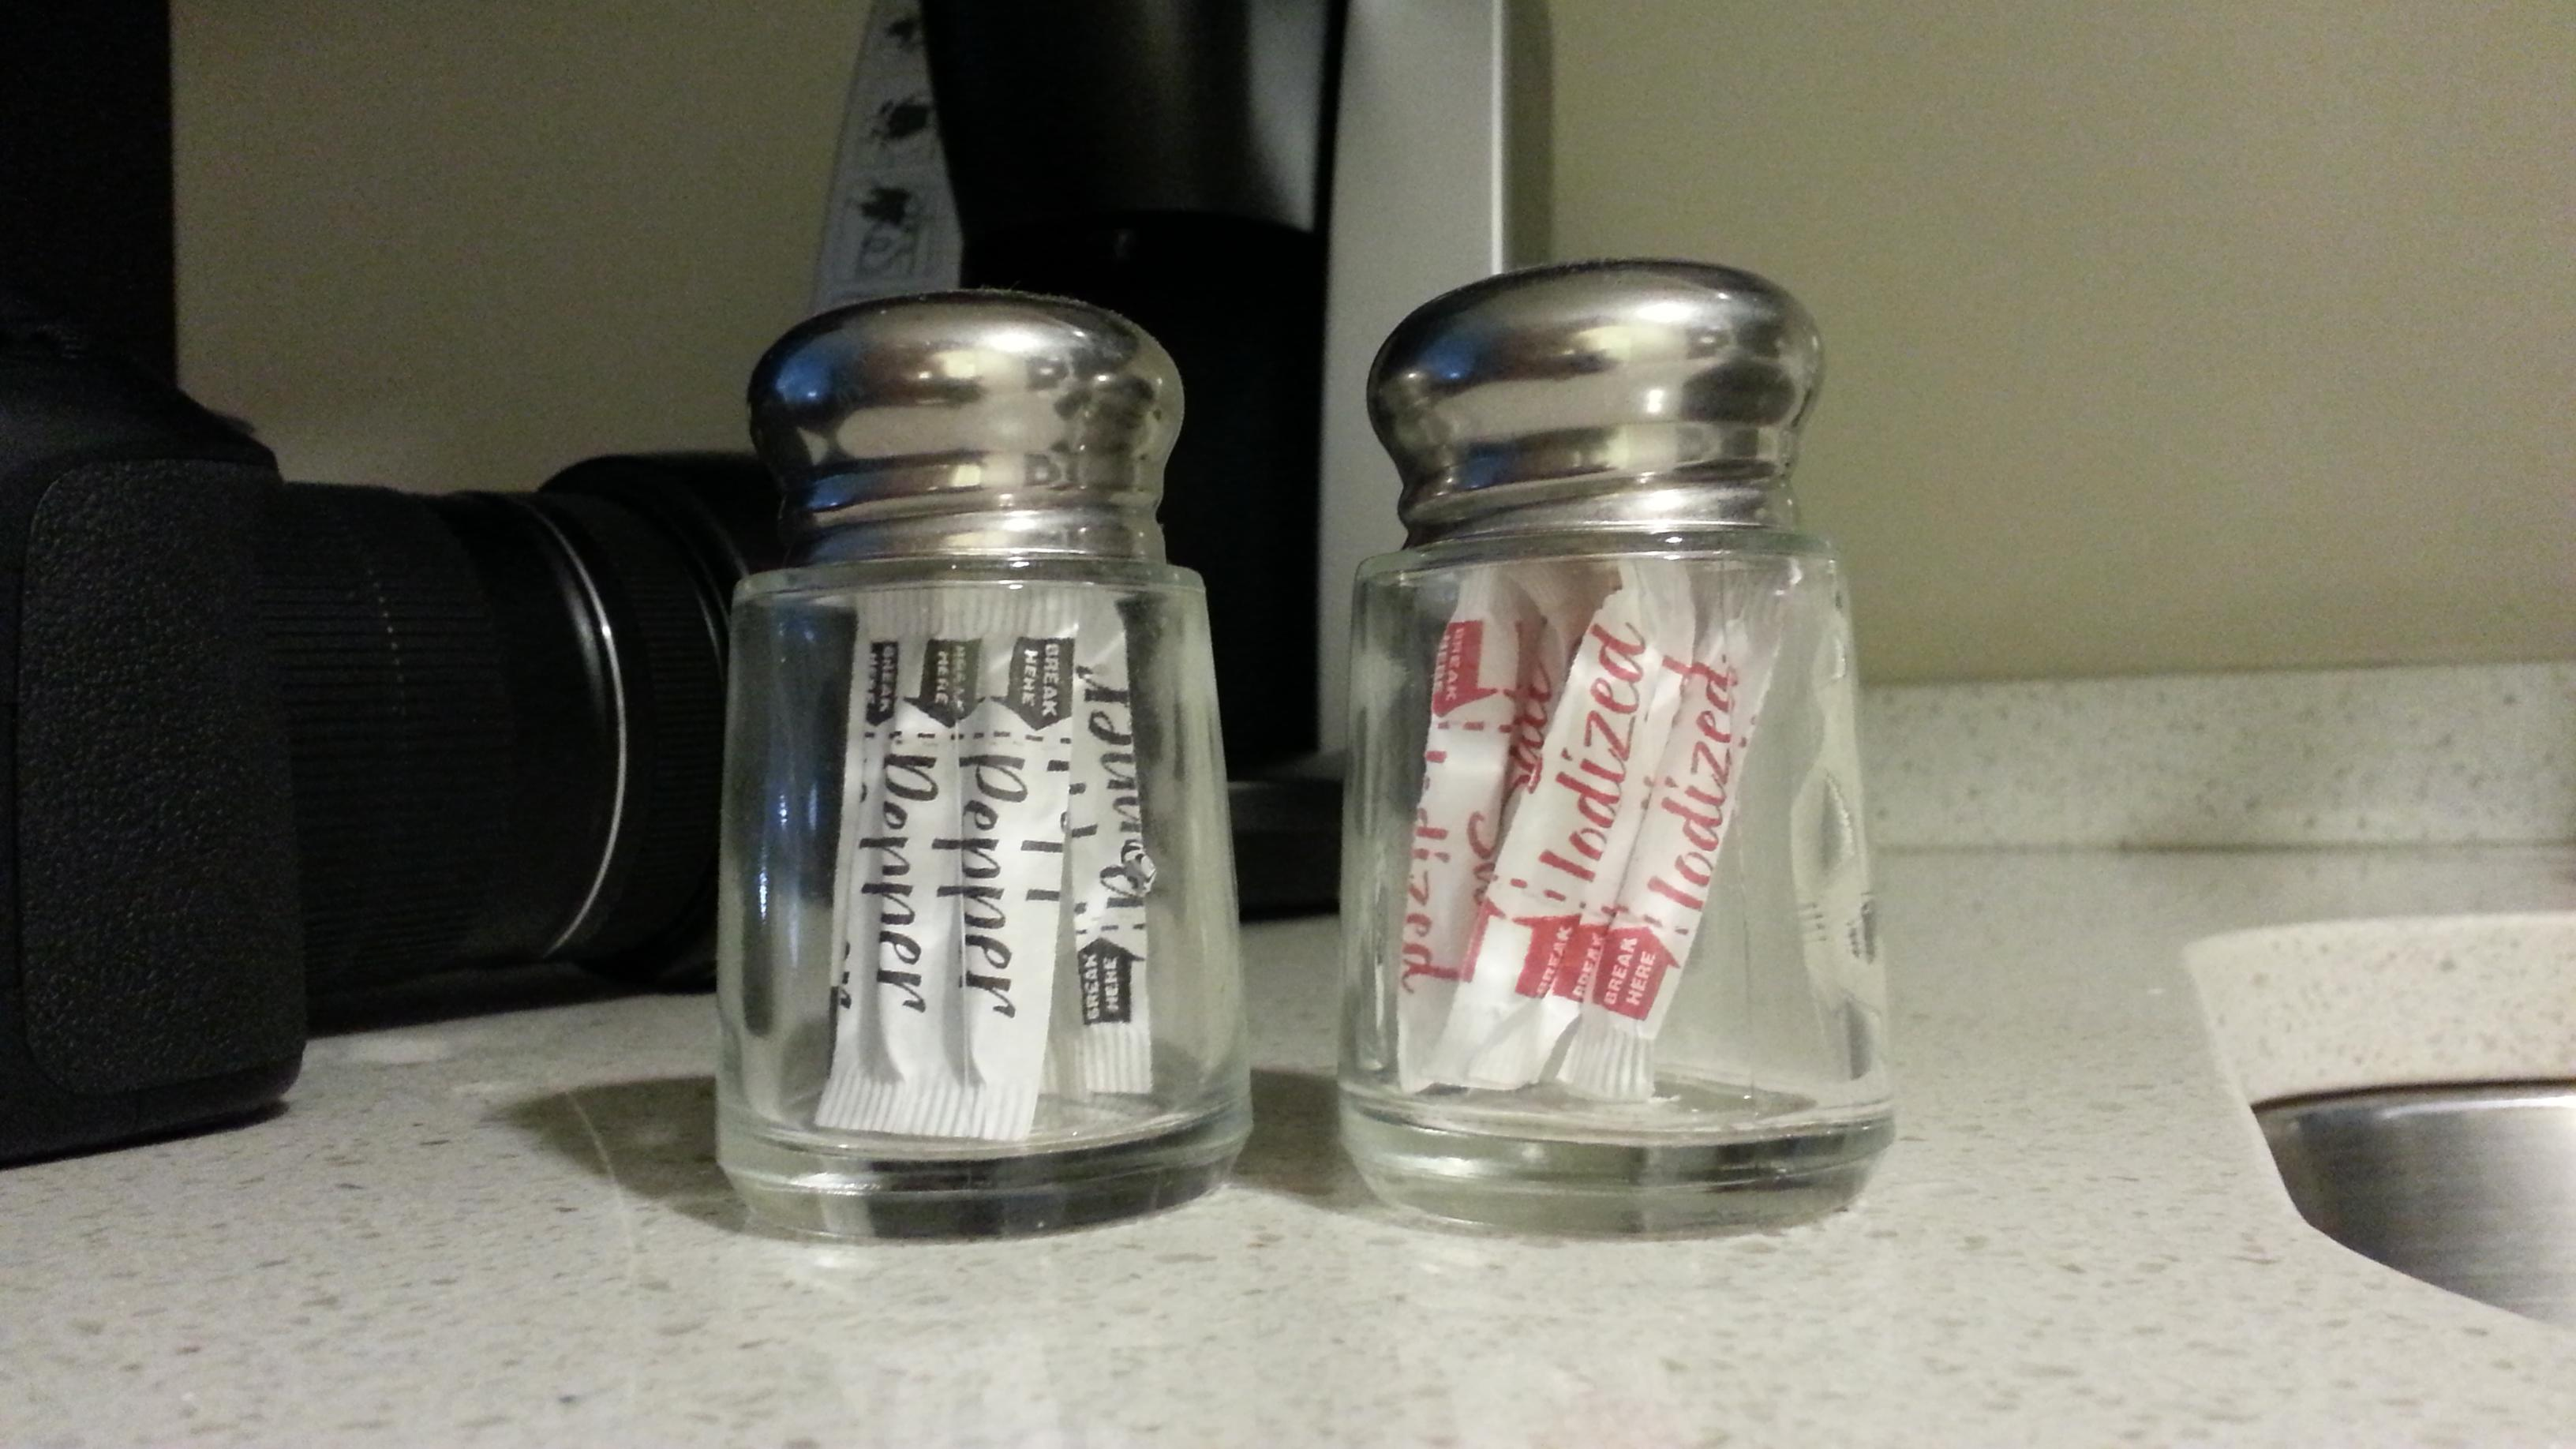 These Are The Salt And Pepper Shakers In My Hotel Suite